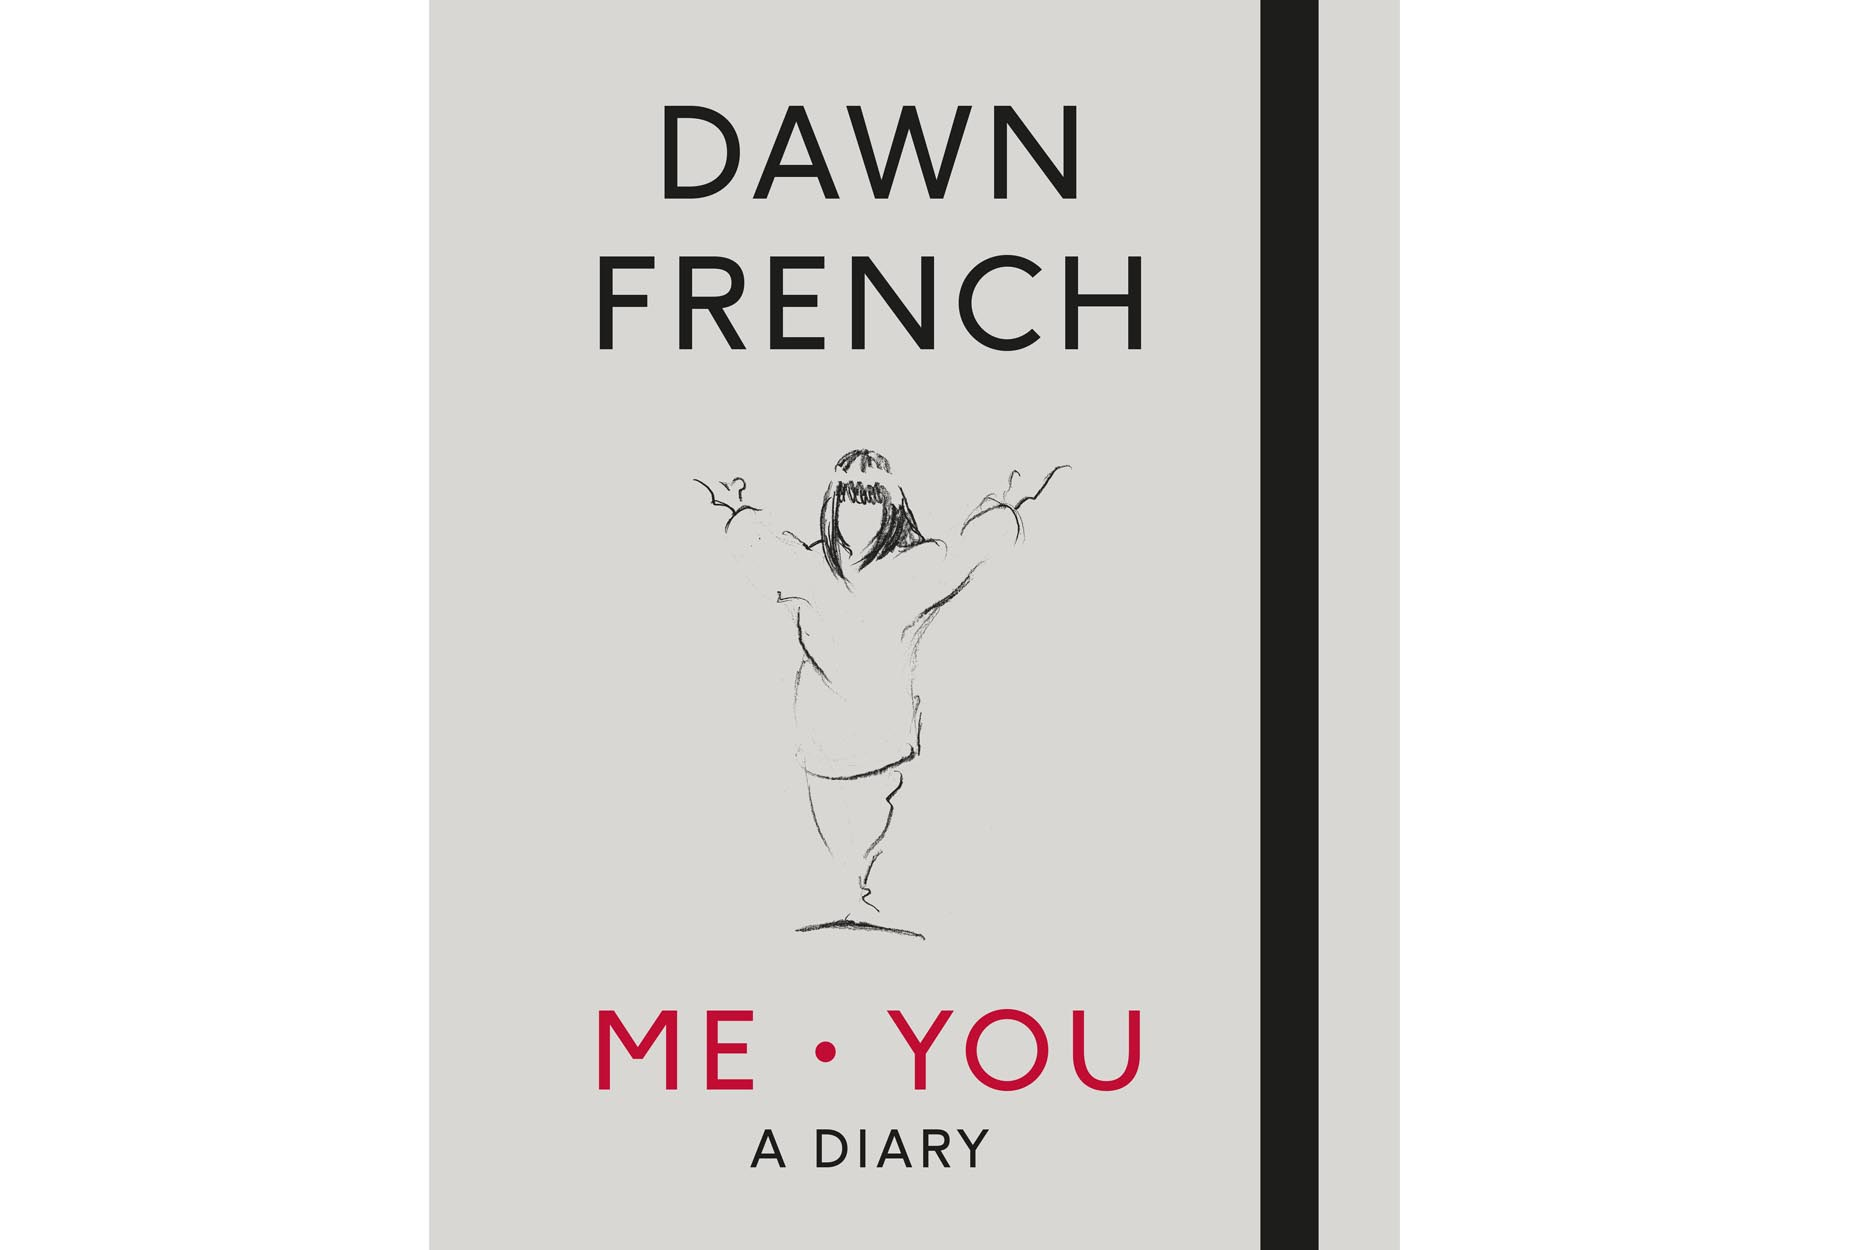 Dawn French's new Book Me. You